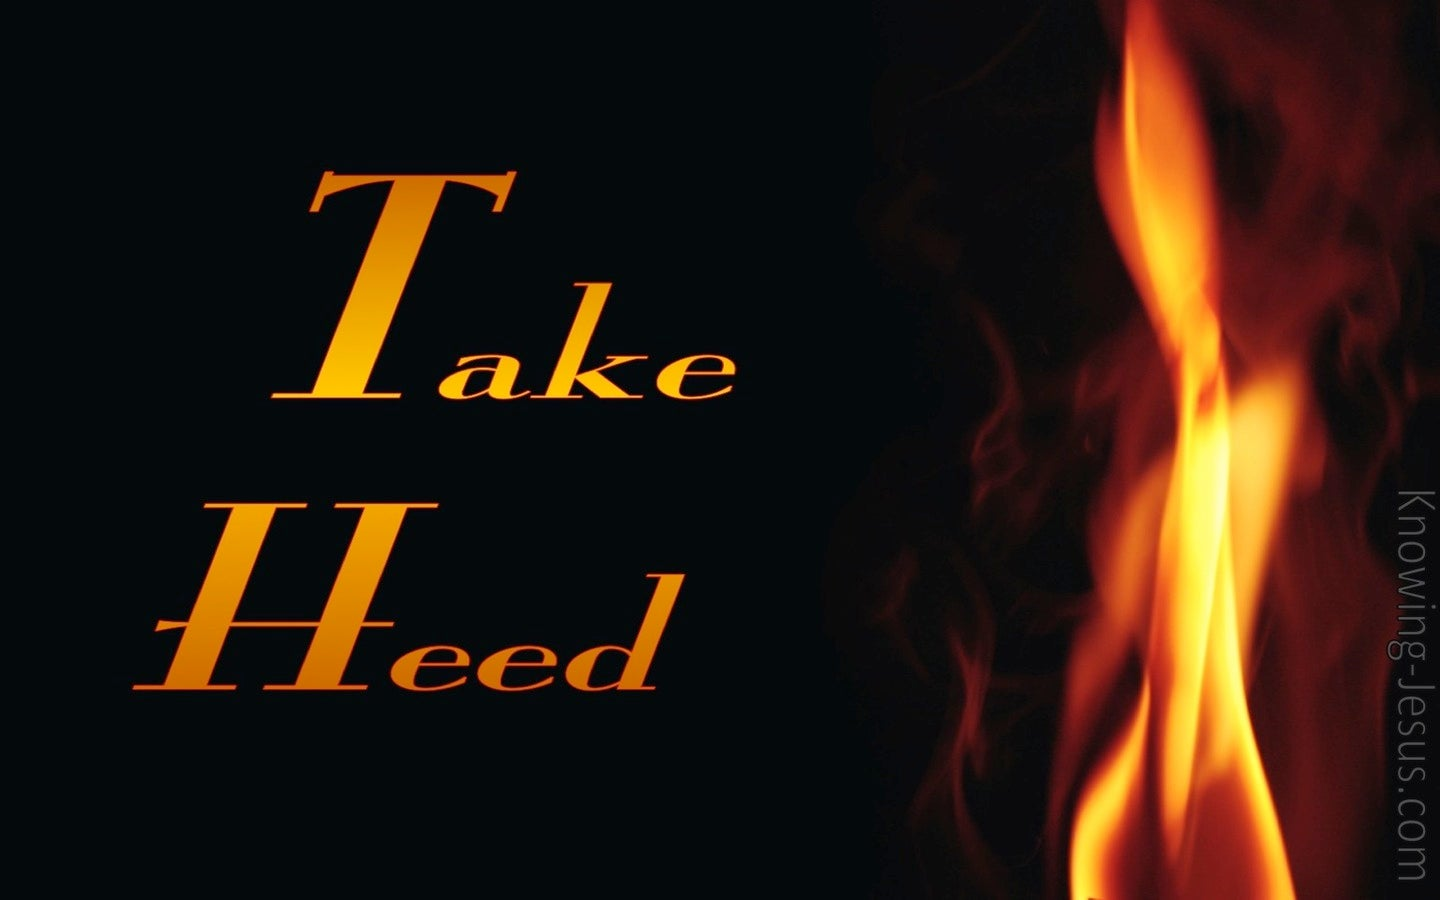 Take Heed (devotional)06-18 (orange)